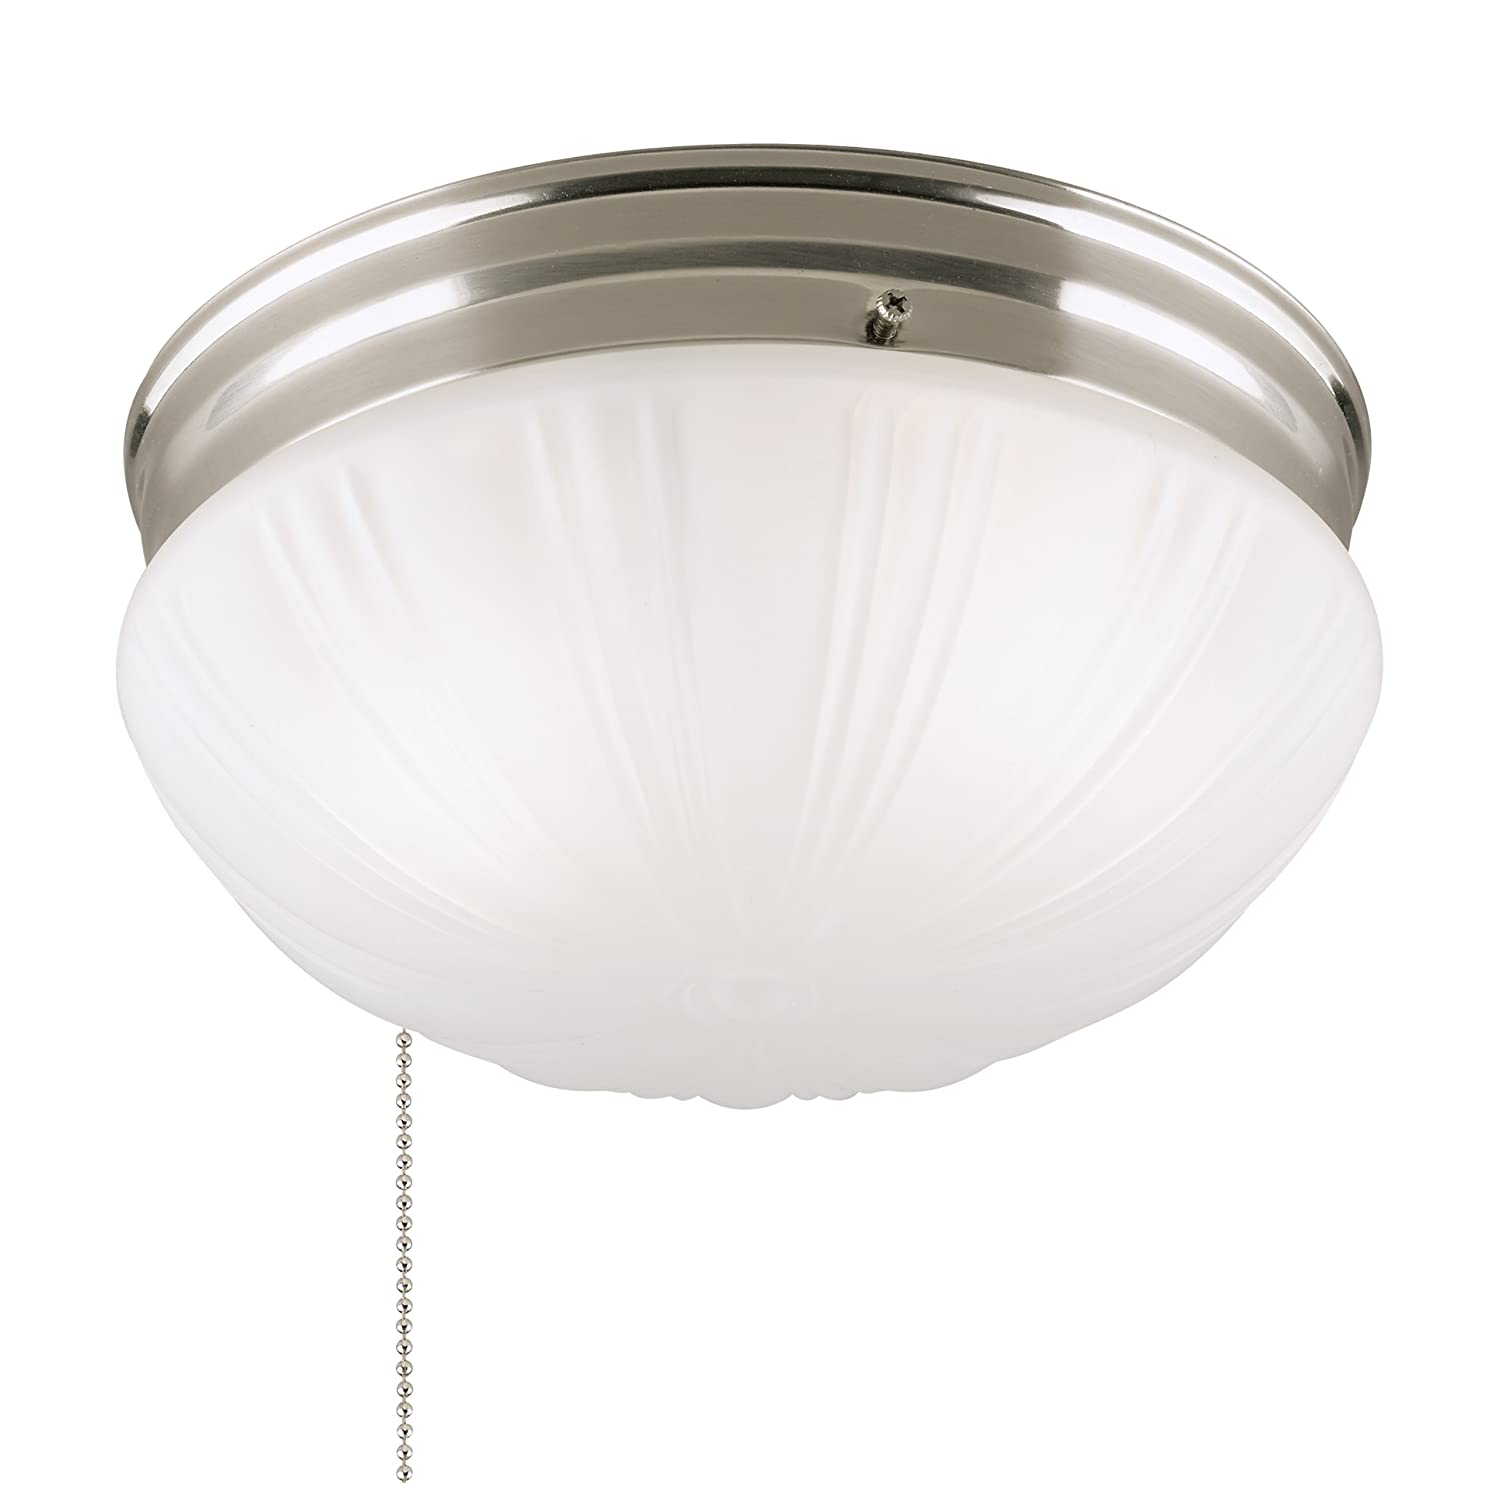 for ceiling beach image bathroom three of light fixtures boys ideas shower replacement lighting fixture bulb especially